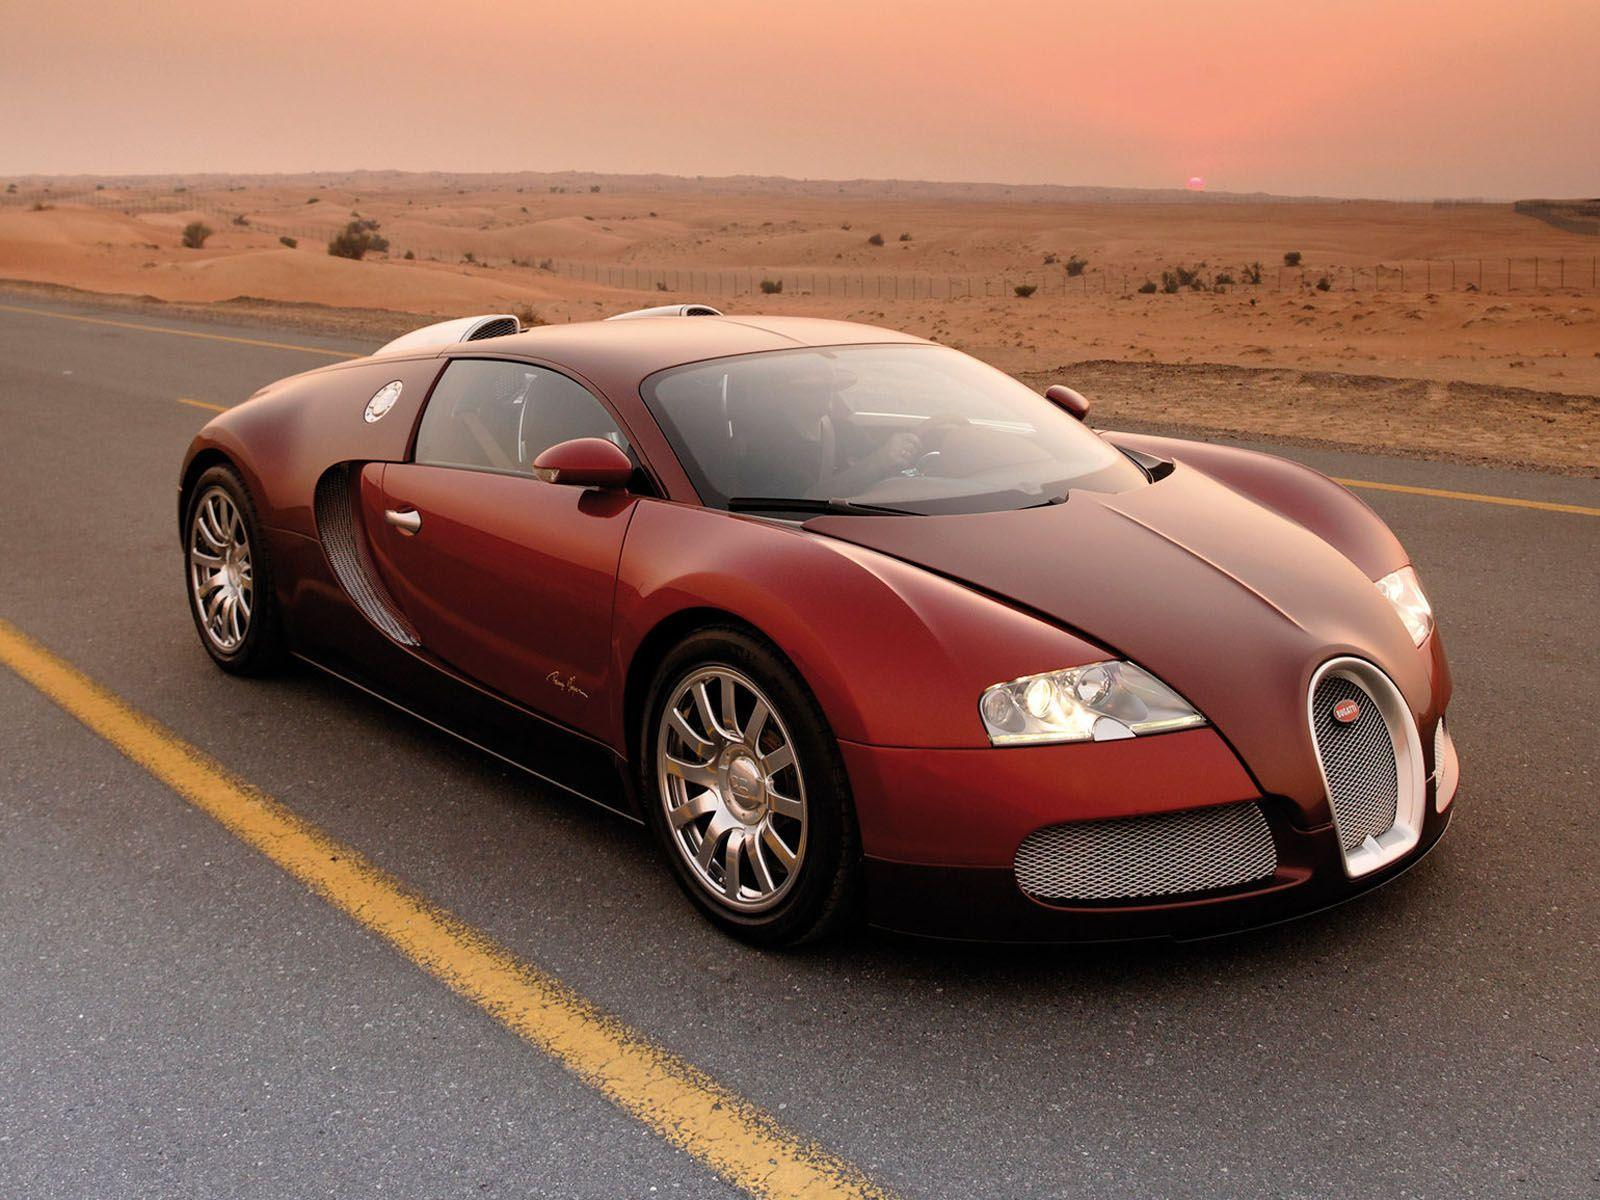 2015 Bugatti Veyron Hyper Sport HD Wallpapers 1080p